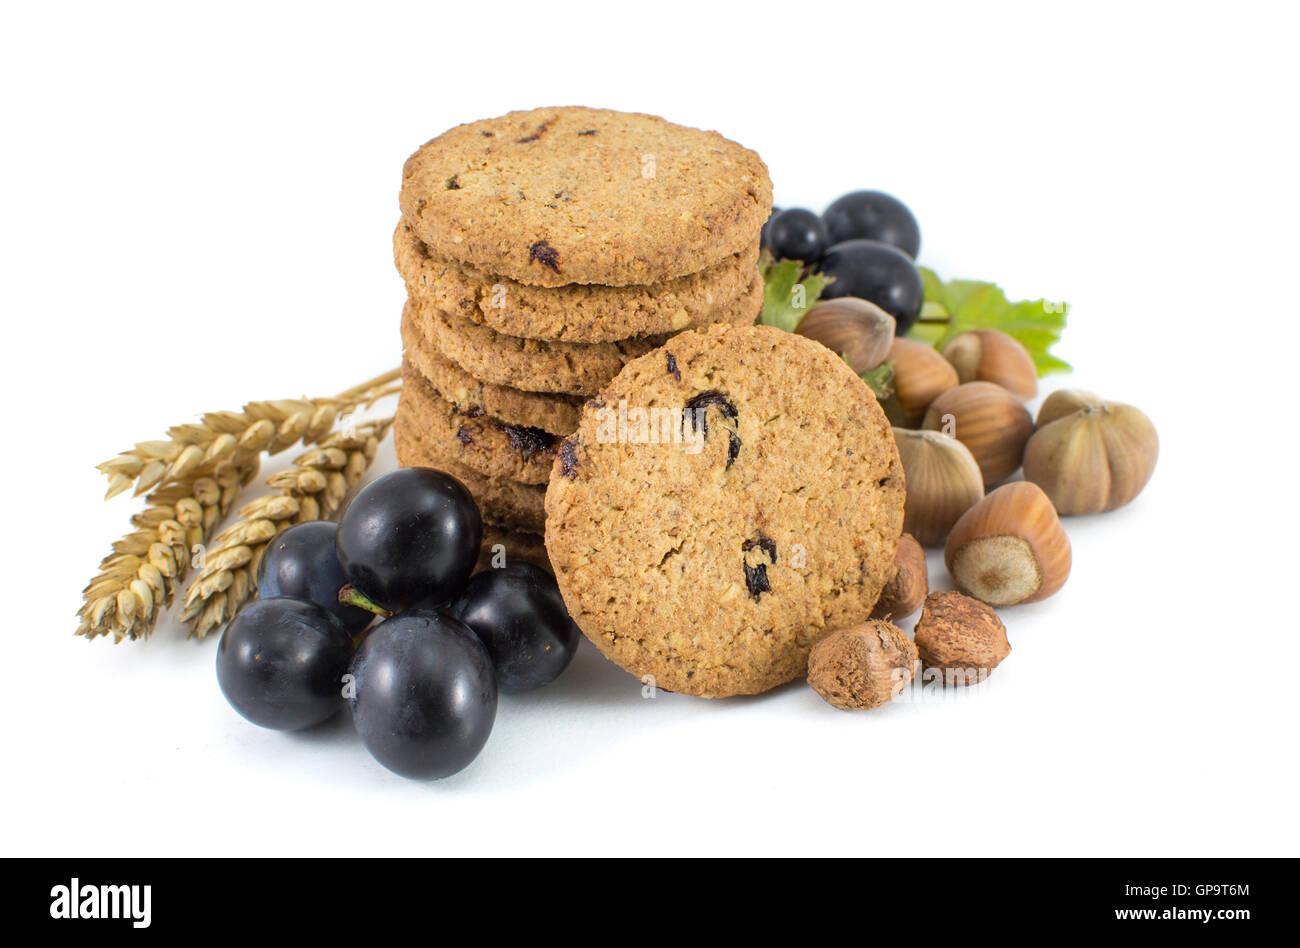 Biscuits Biscuit Box Food Cut Out Stock Images Pictures Alamy Jules Destrooper Apple Thin 100 Gr Integral Cookies With Grapes And Hazelnuts Isolated Image